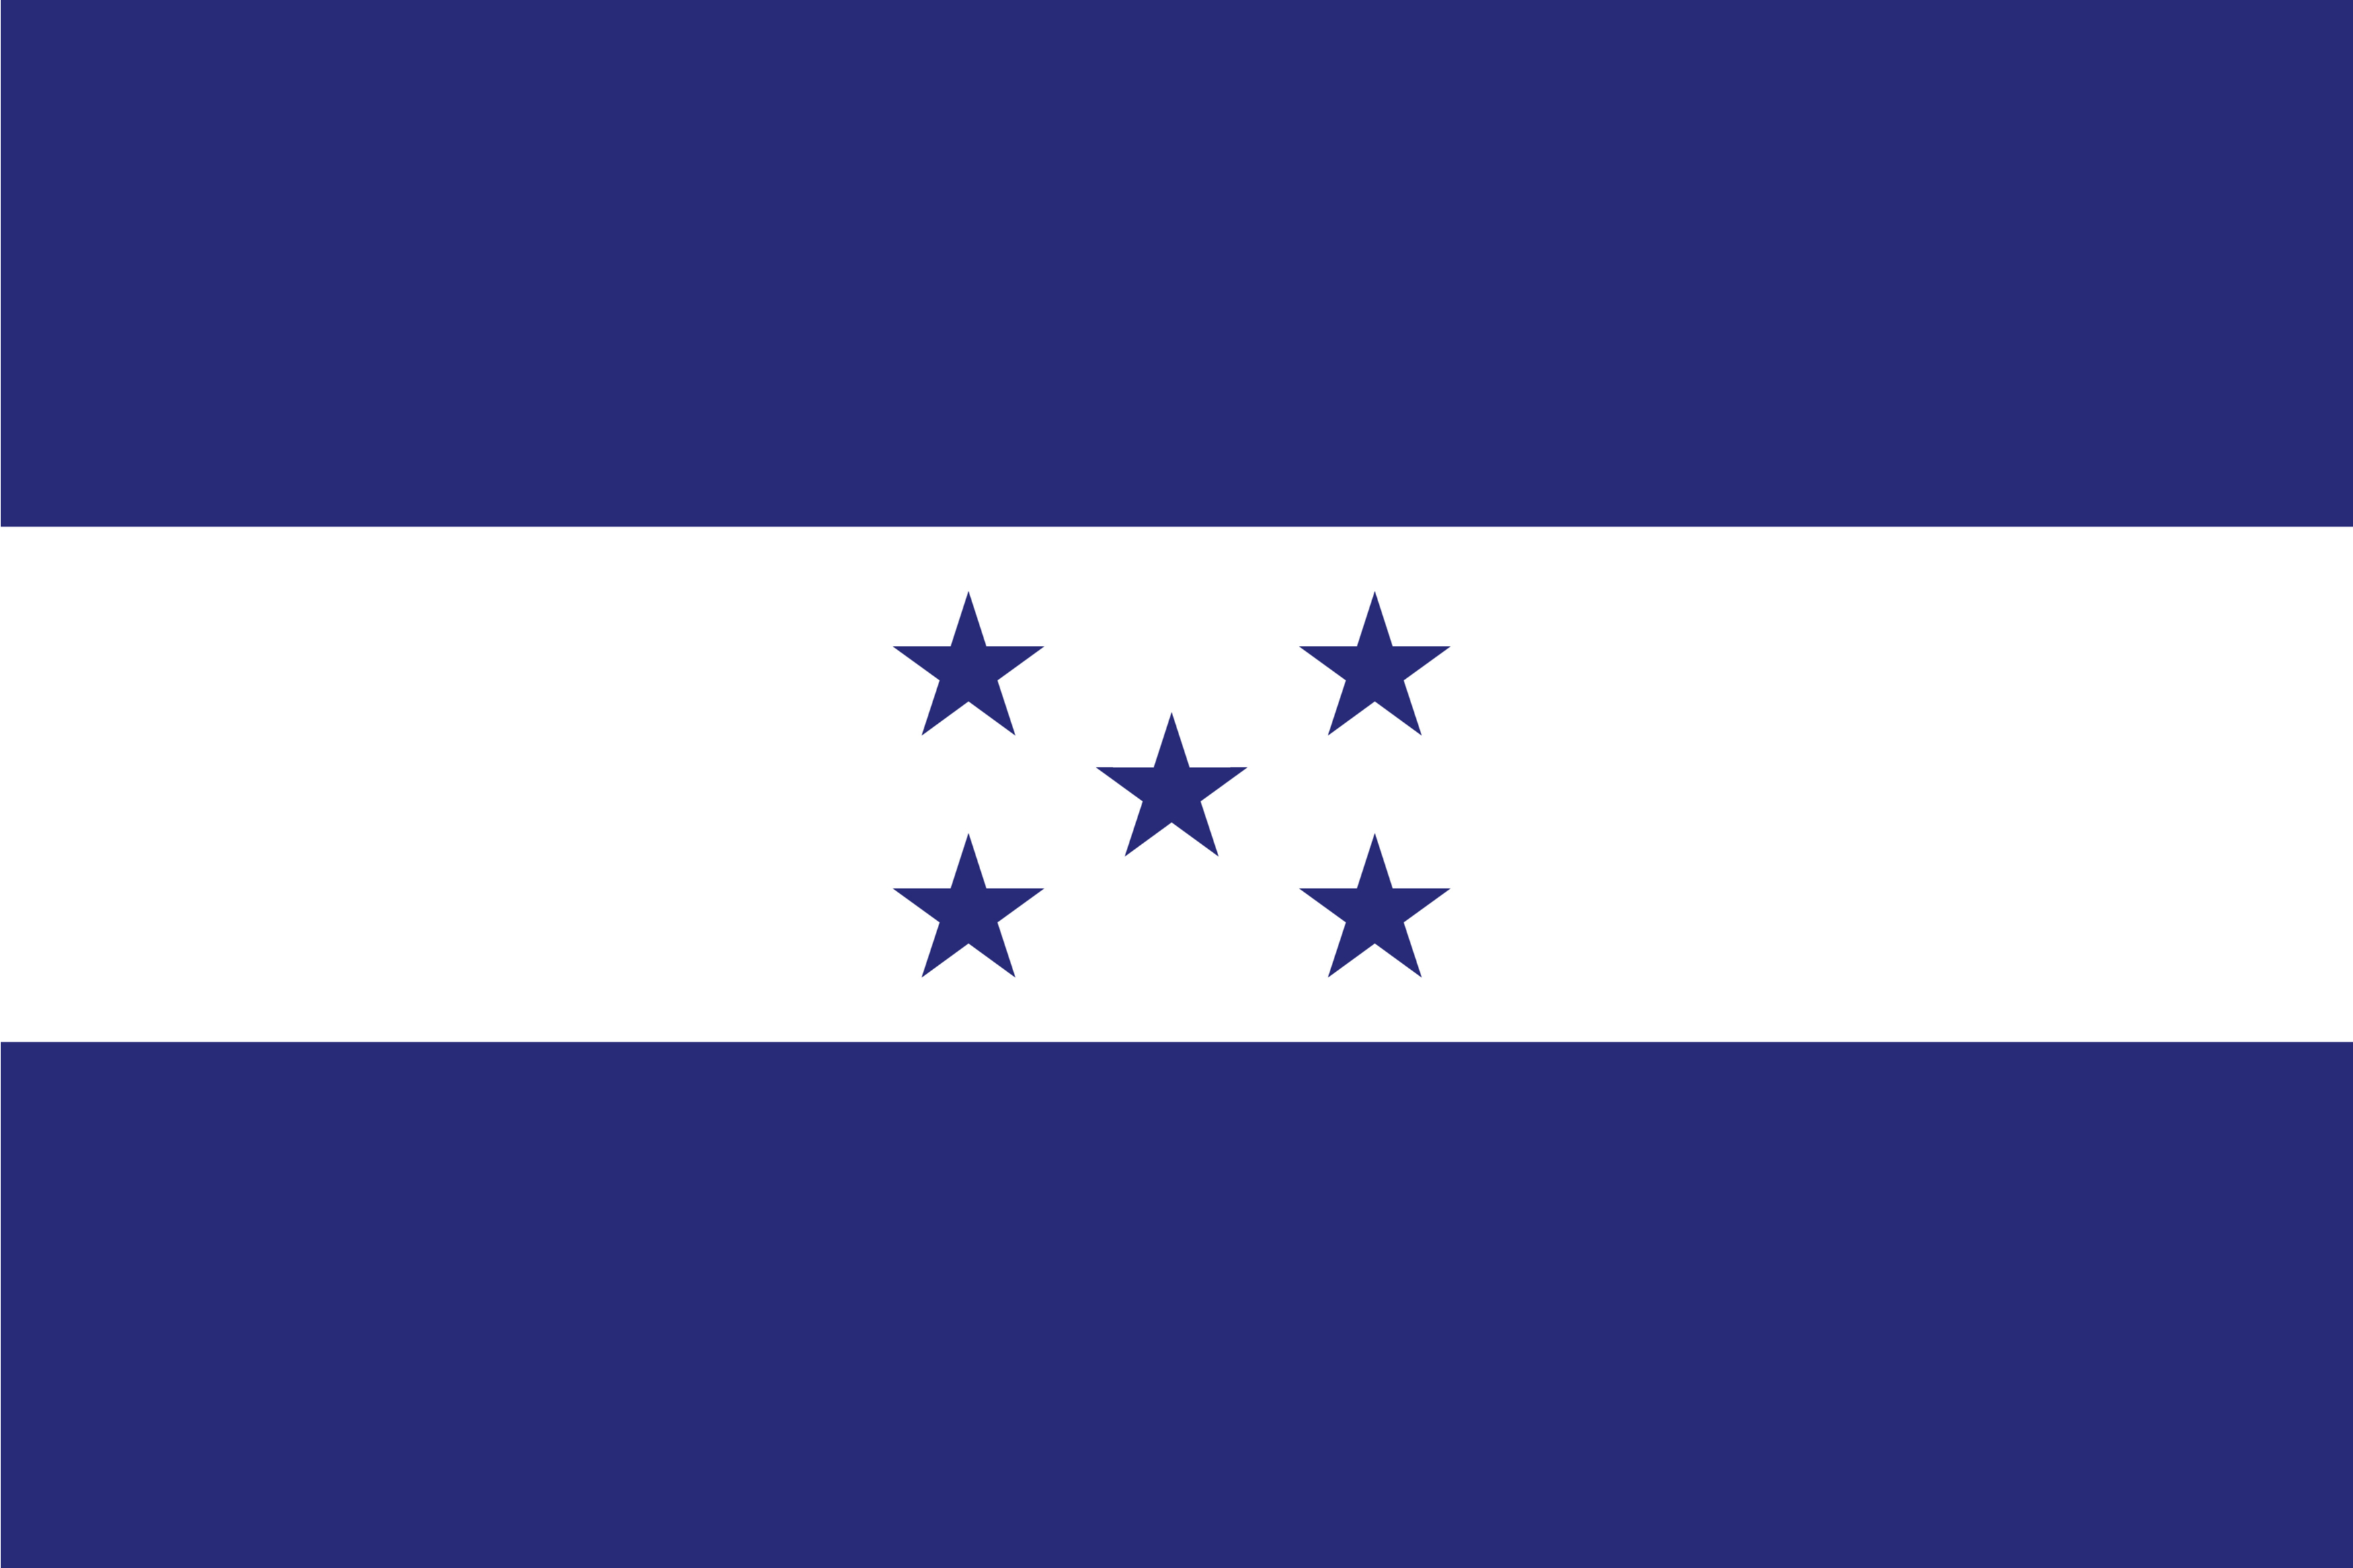 The national flag of Honduras is a tricolor horizontal flag of white sandwiched between two blue bands with five stars centered on white